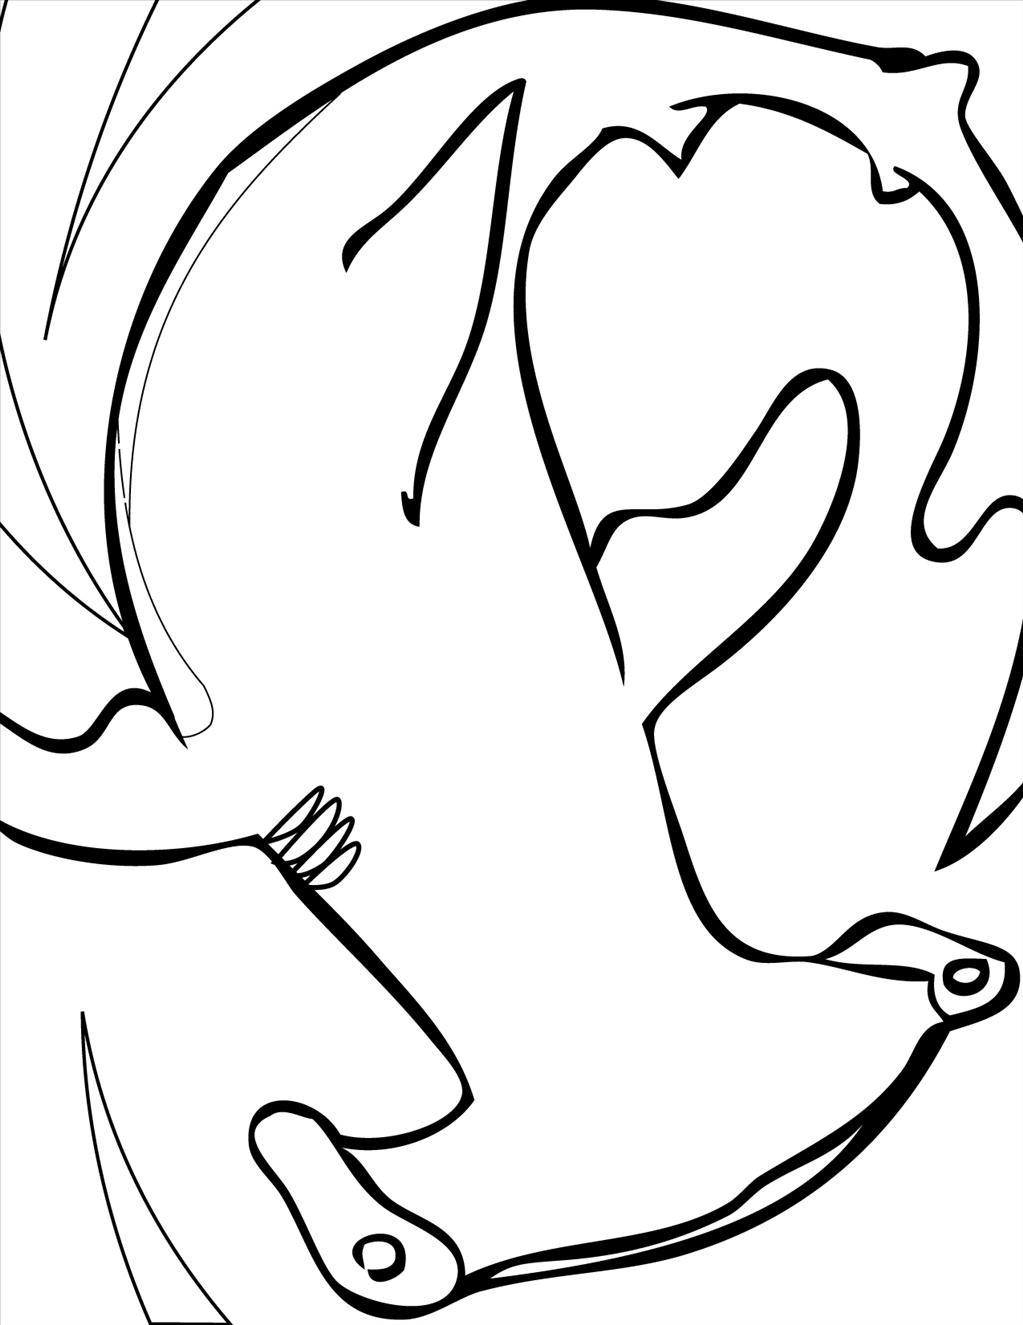 1023x1325 Great Shark Coloring Page Image Unknown Resolutions High